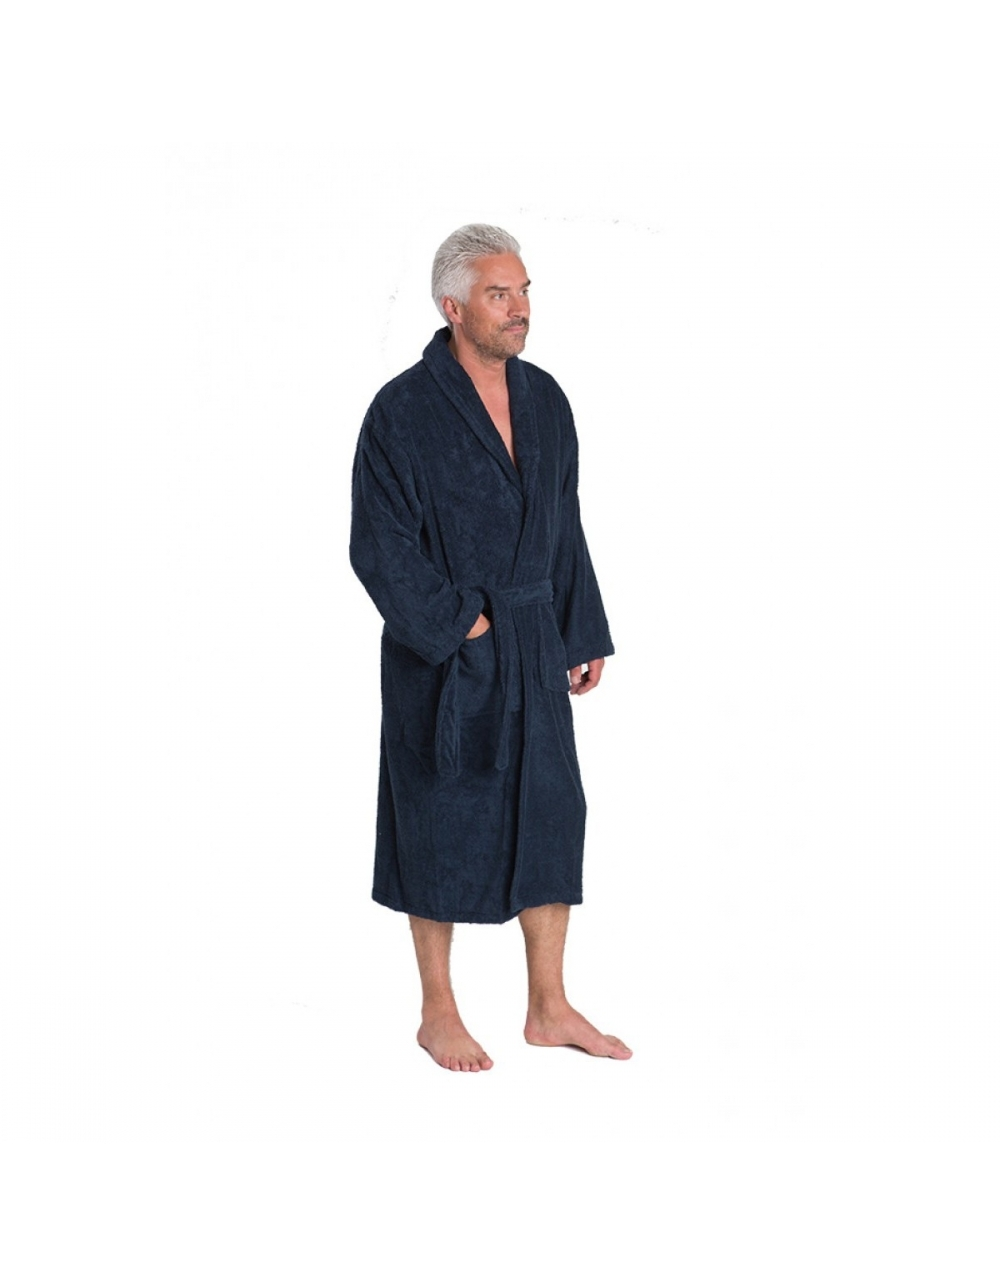 Online shopping from a great selection at Clothing Store. Men Towelling Robe % Cotton Terry Towel Bathrobe Dressing Gown Bath Perfect for Gym Shower Spa Hotel Robe Holiday.